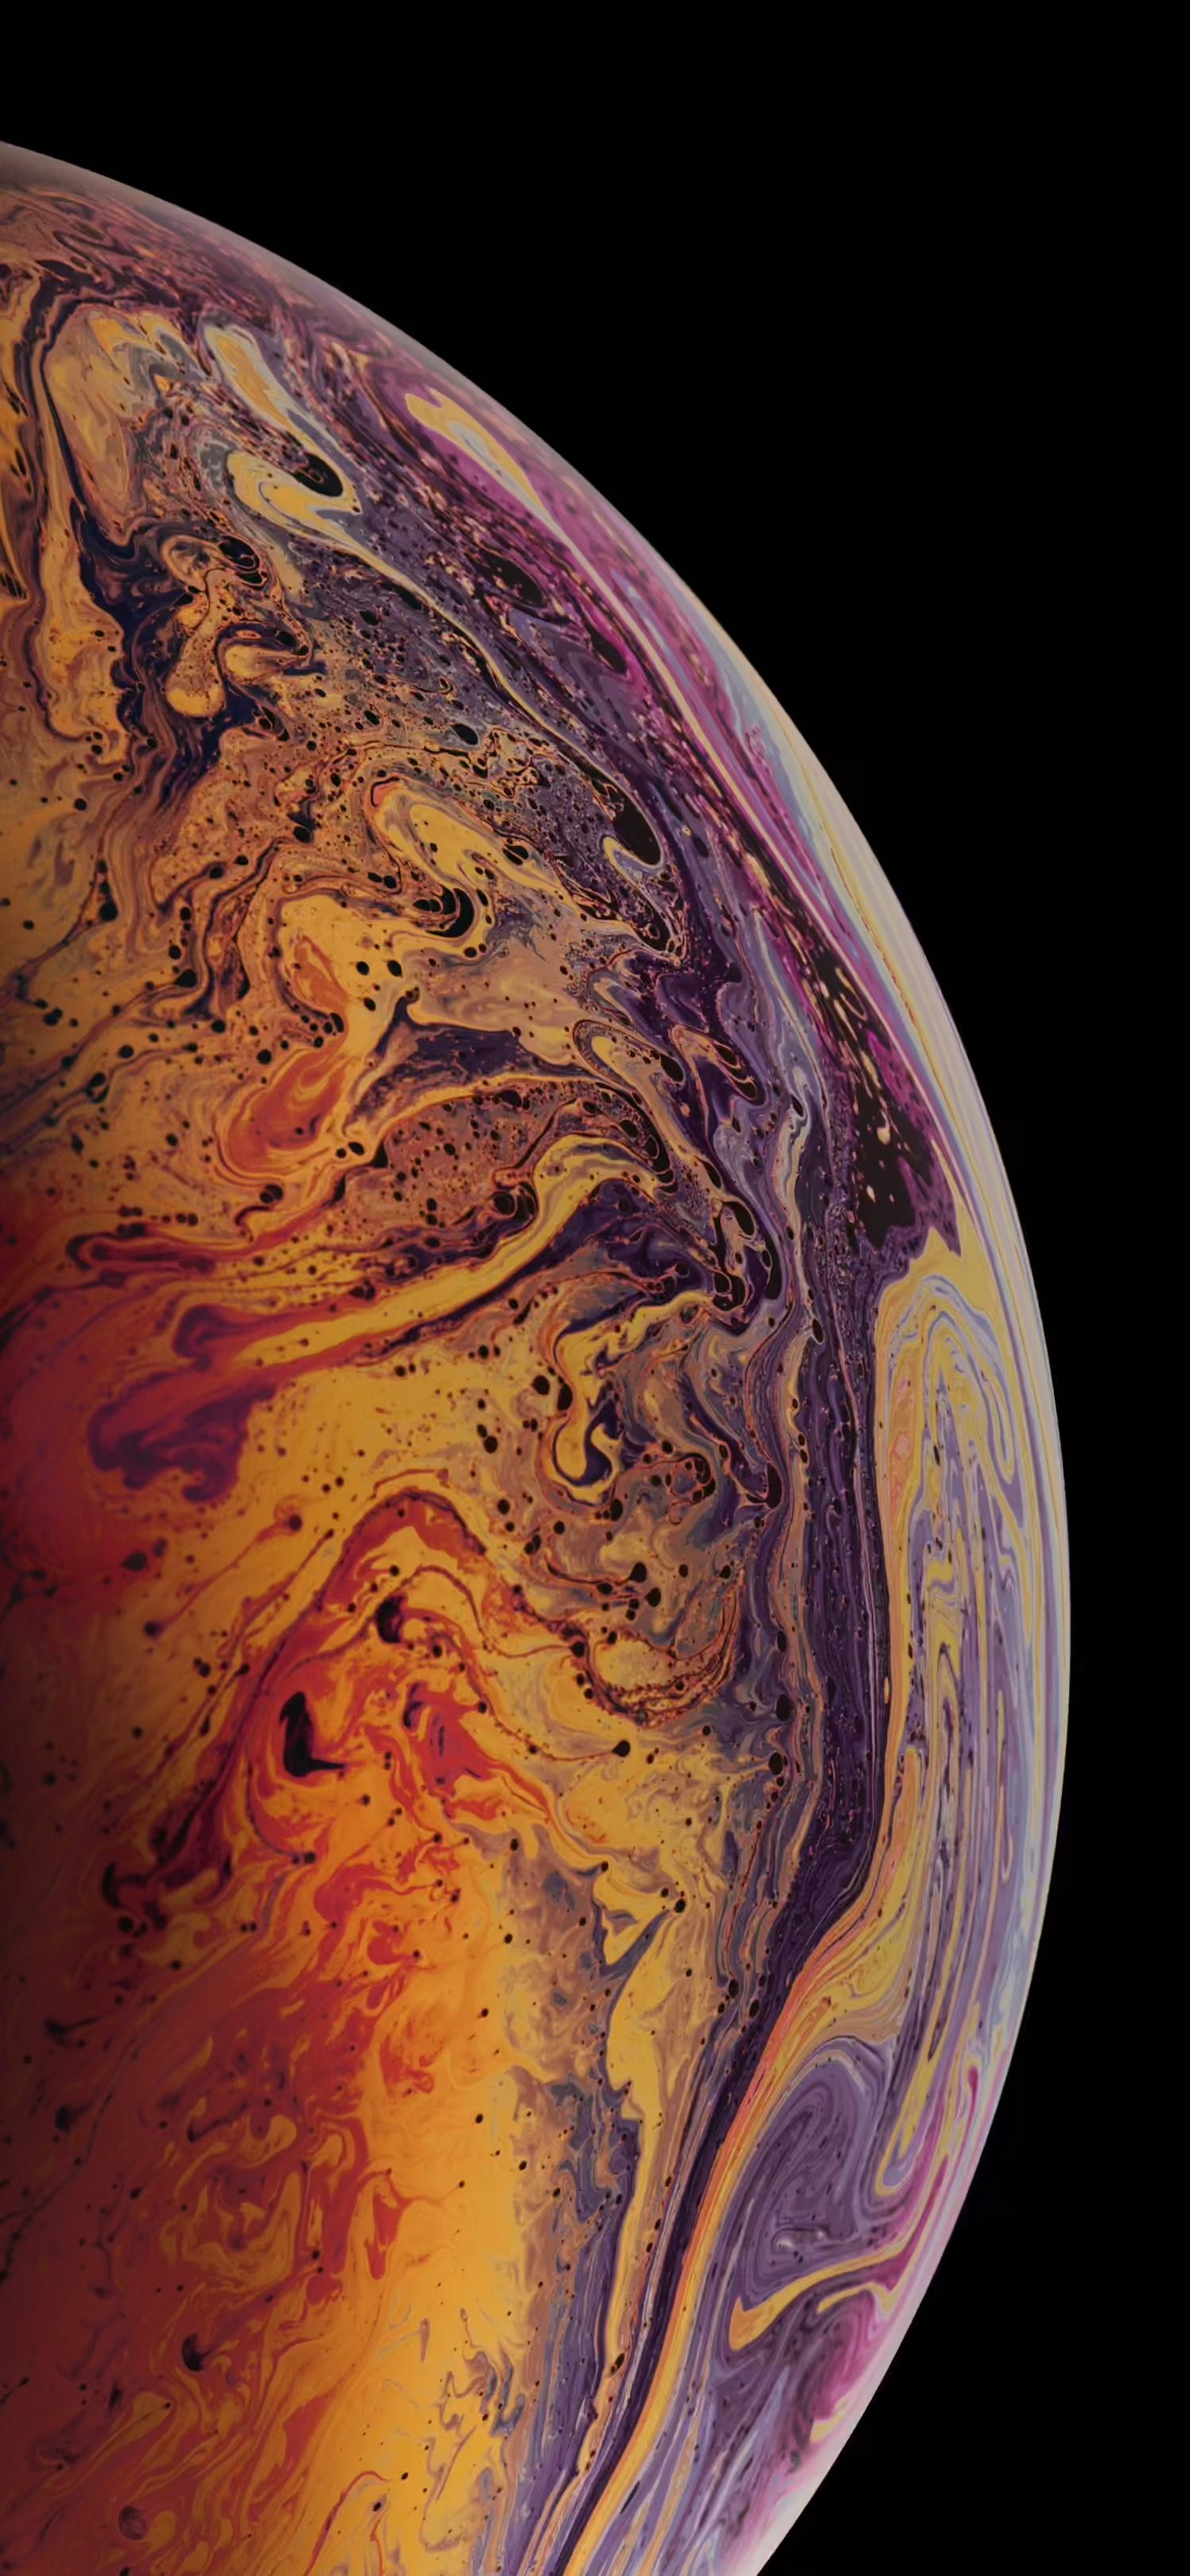 Download All New Iphone Xs Xs Max Xr Wallpapers Live Wallpapers